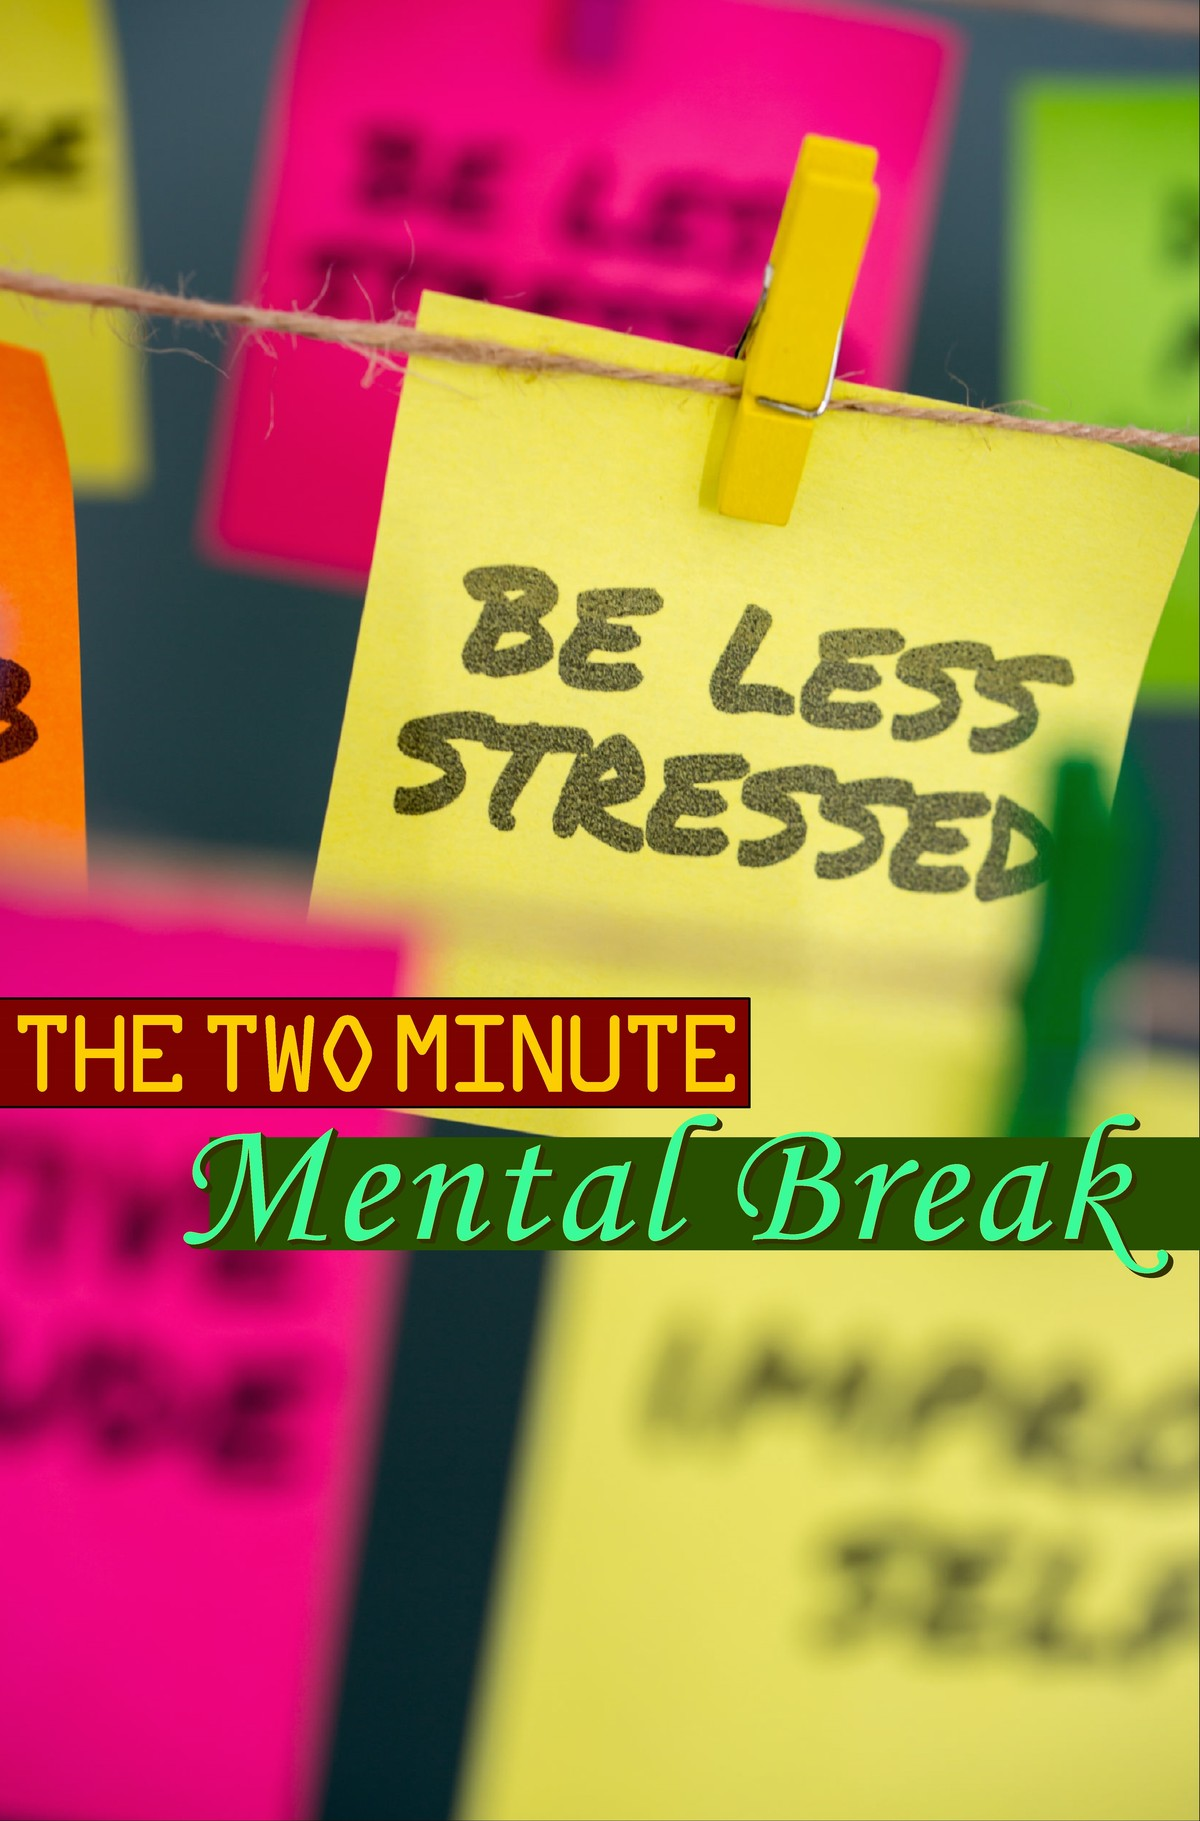 L7031 - The 2 Minute Mental Break